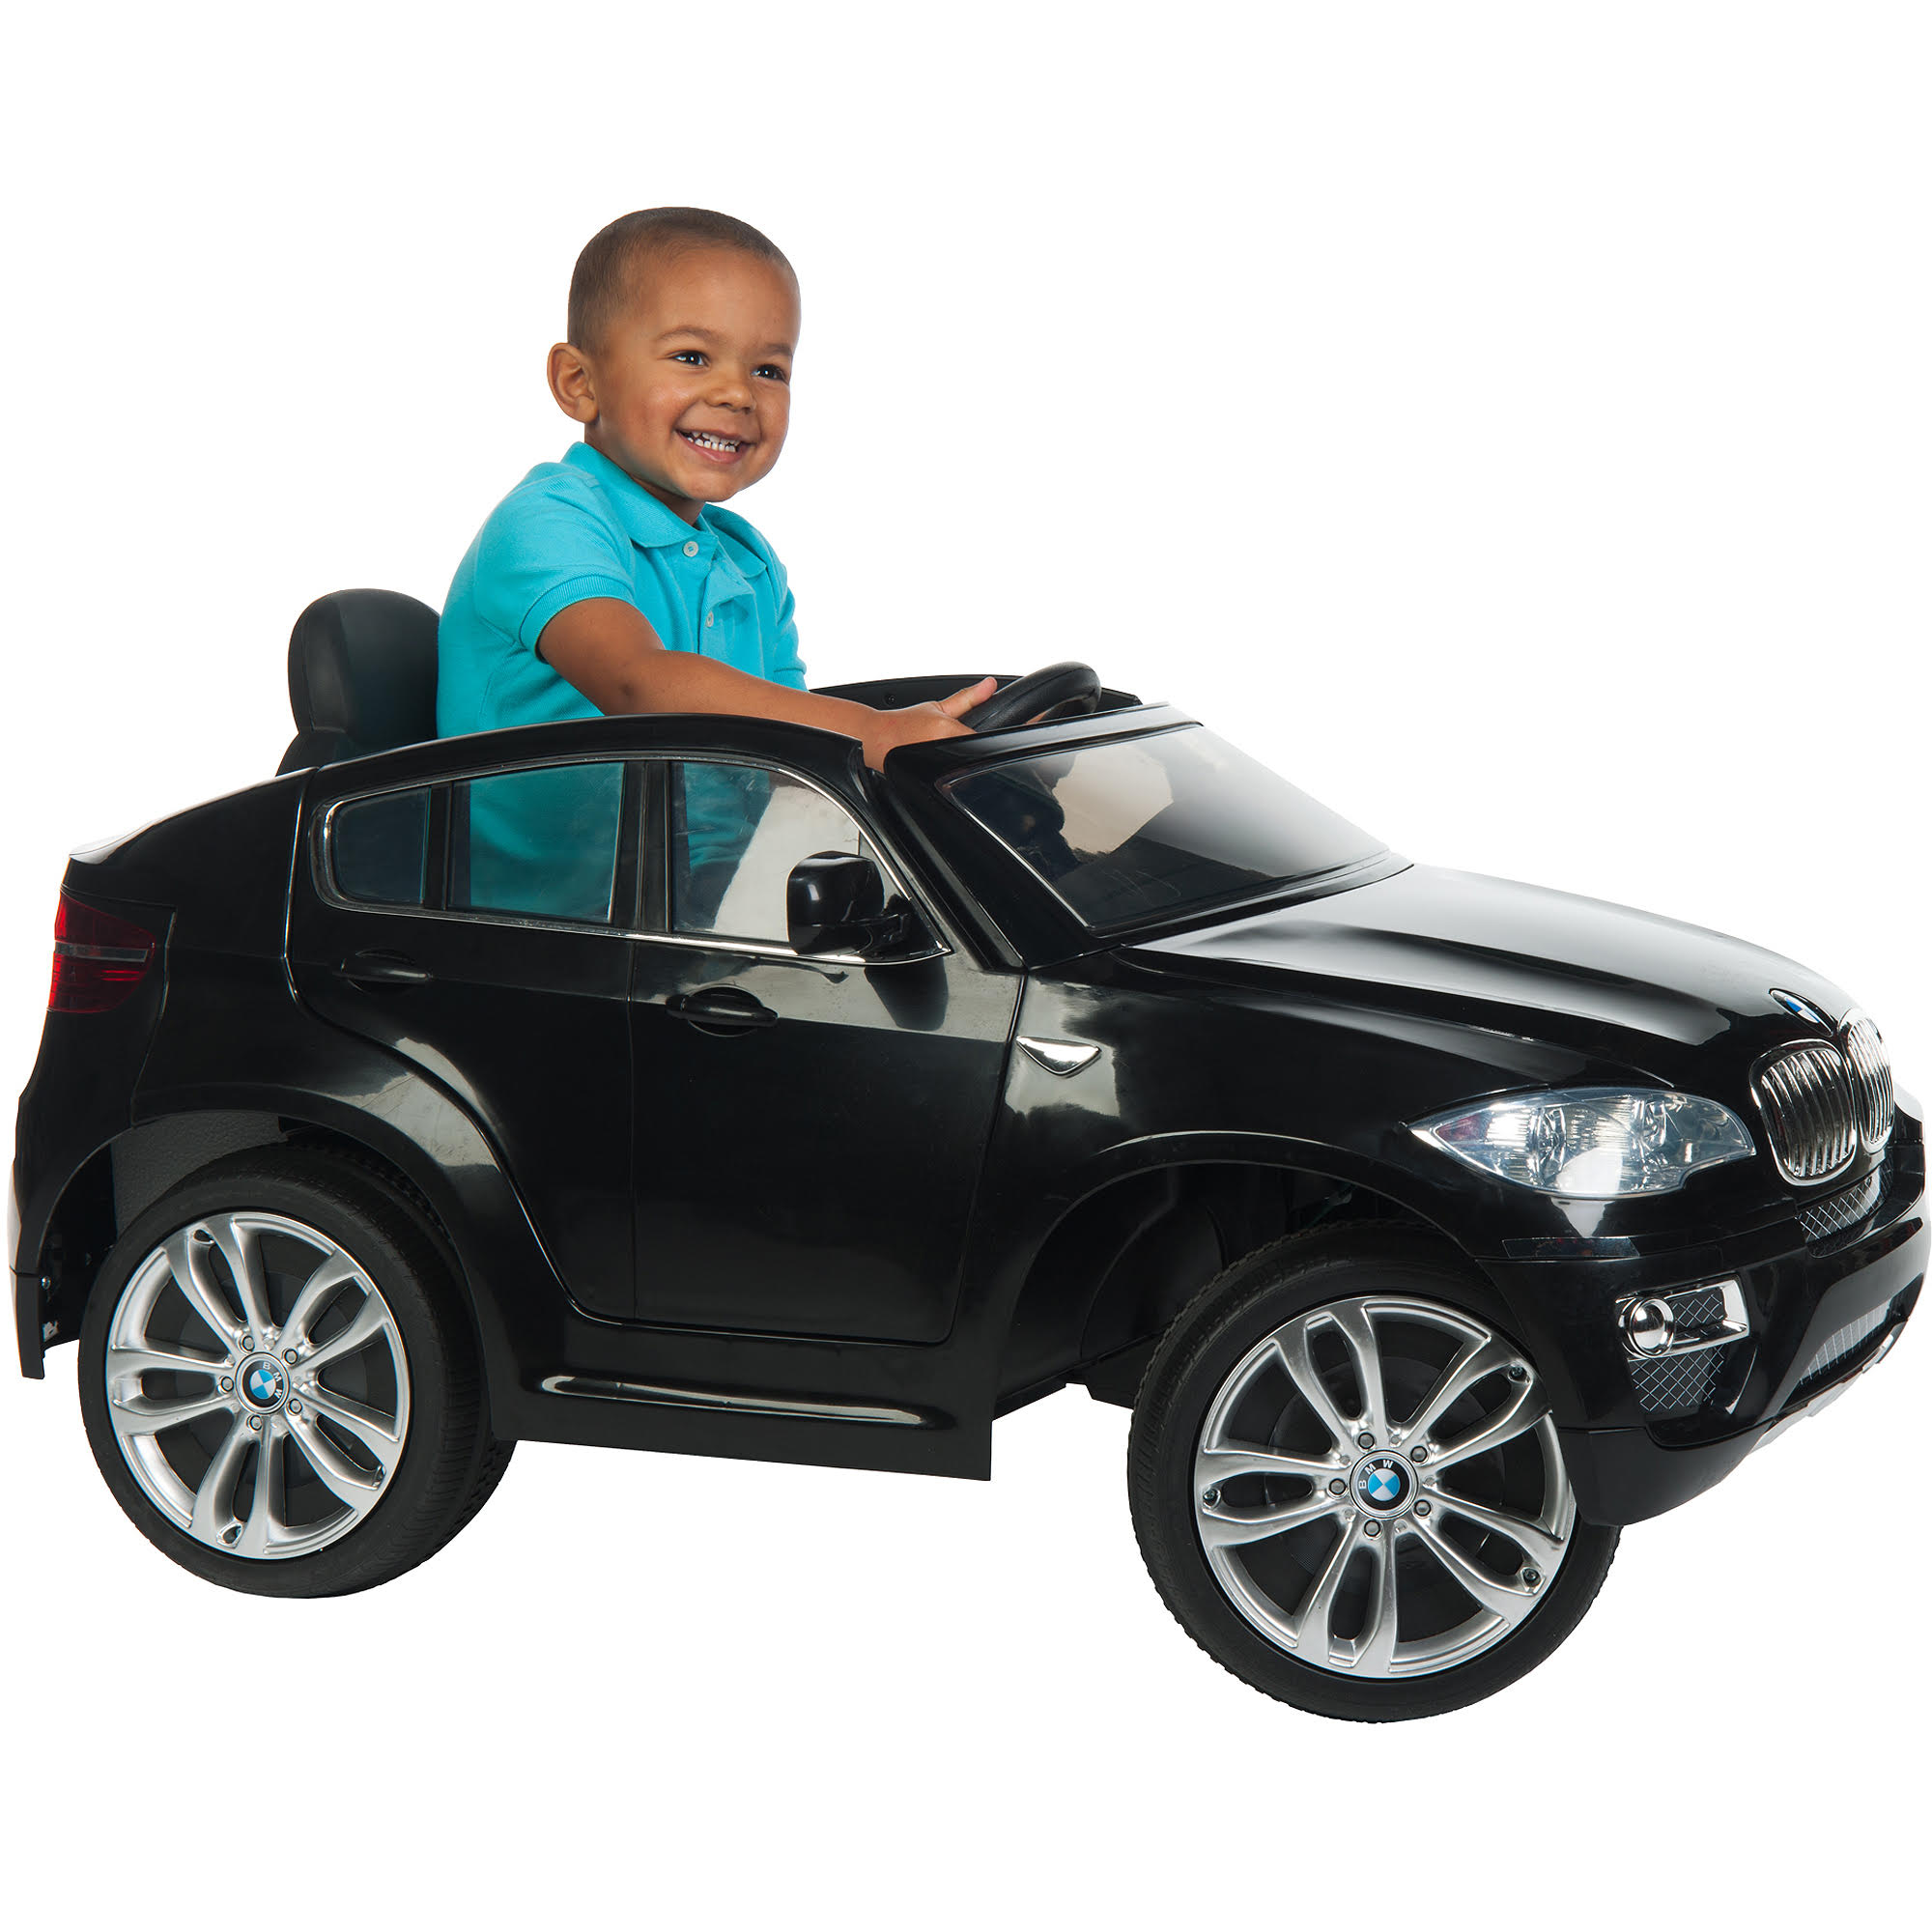 Ride-On Toy Safety- How Parents Can Go The Extra Mile - Successful Black Parenting Magazine